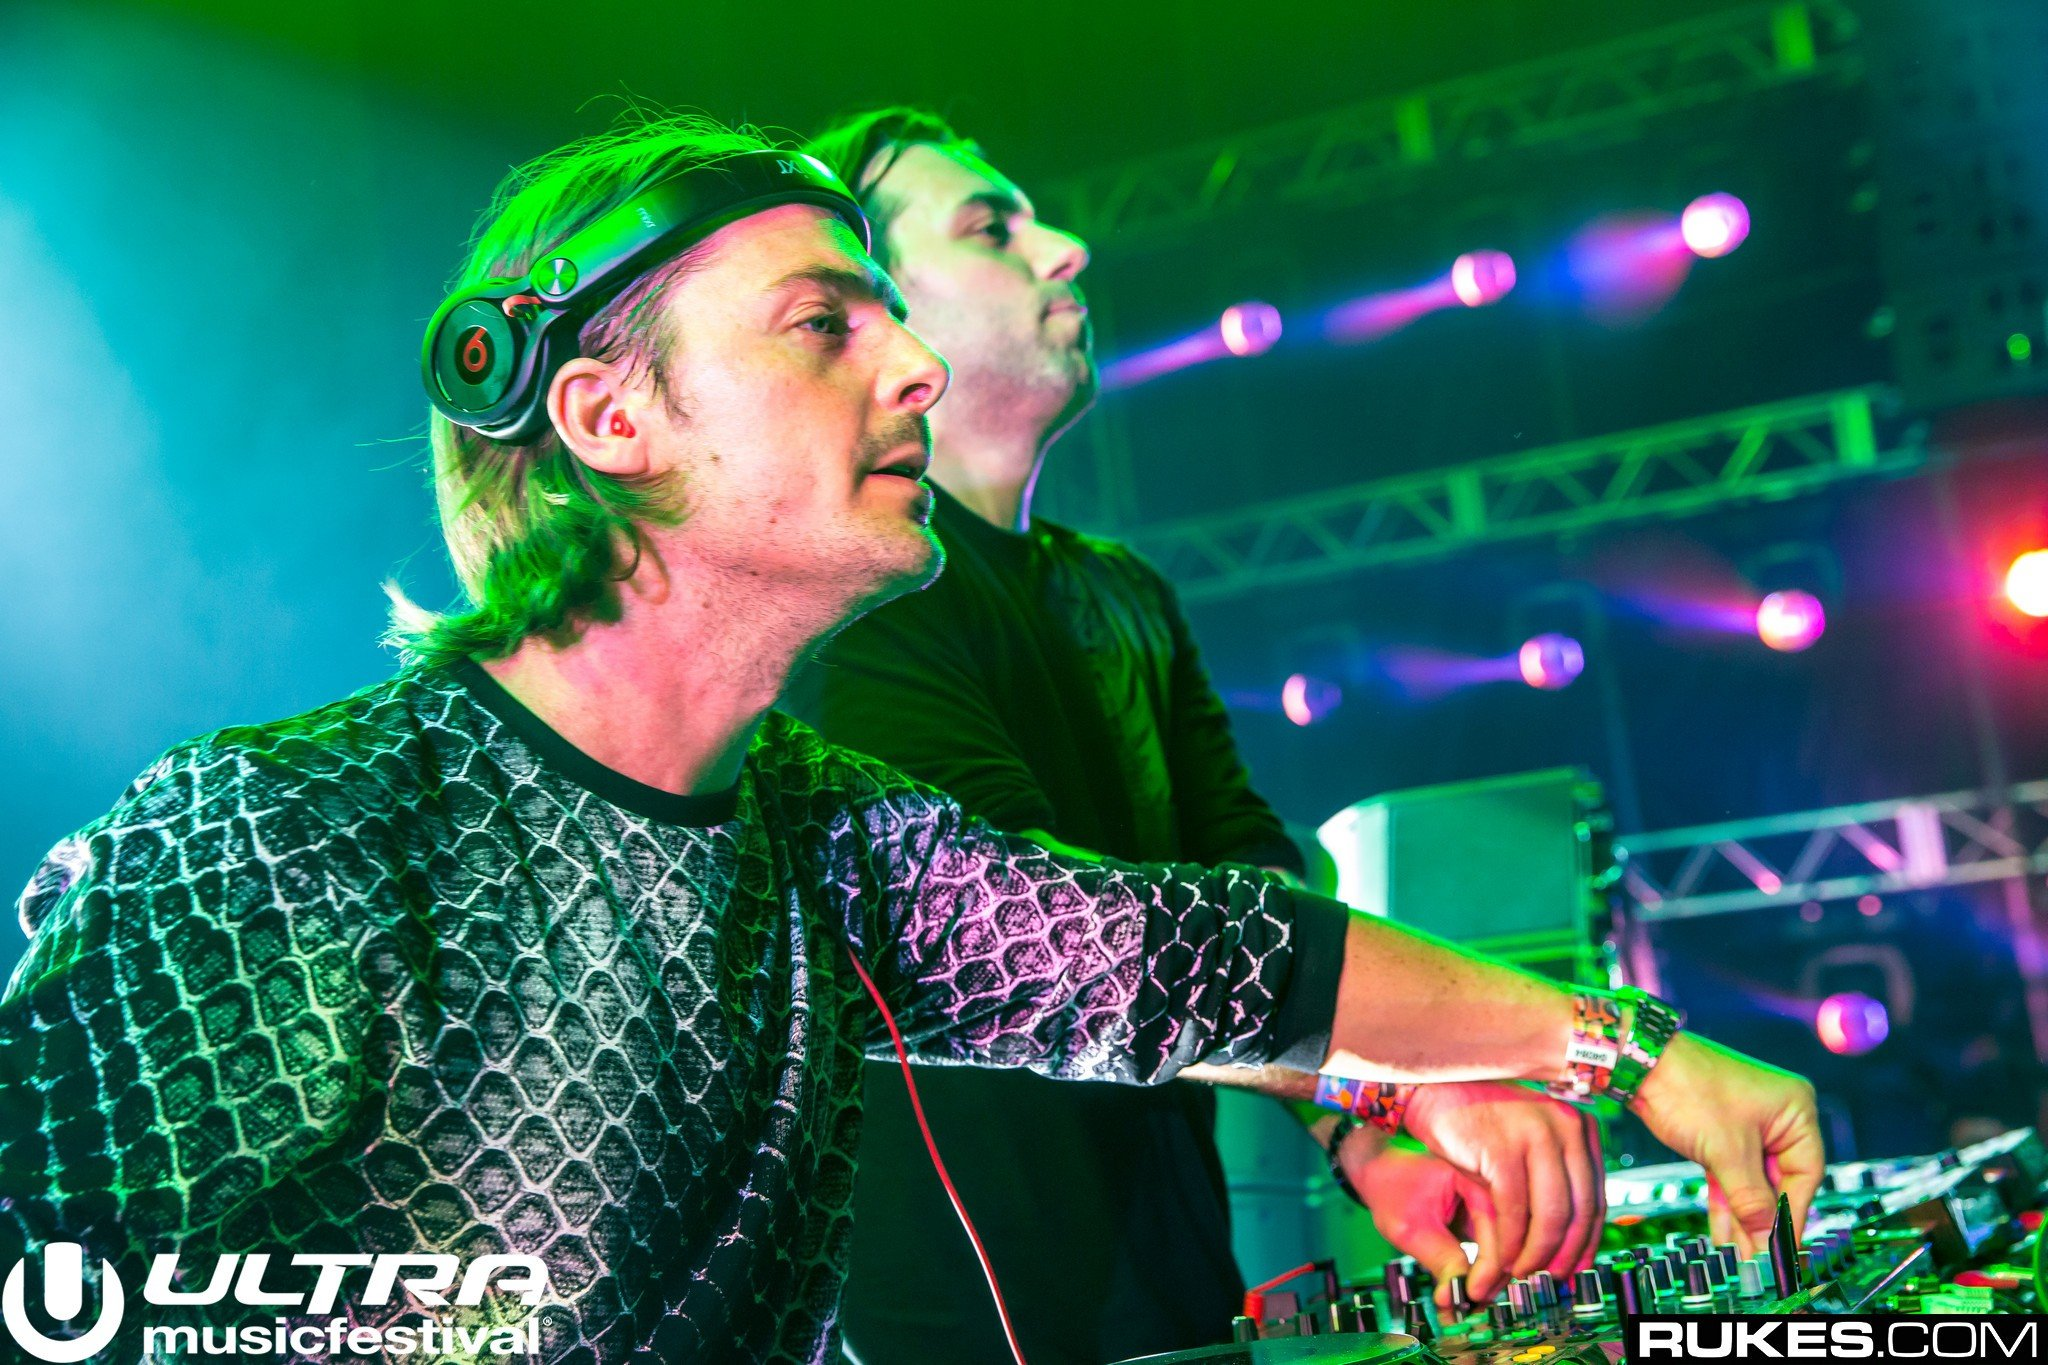 Axwell & Ingrosso (stylised as Axwell Λ Ingrosso) is a Swedish DJ duo consisting of Swedish House Mafia members Axwell and Sebastian Ingrosso. They made their debut performance at the Governors Ball Music Festival in New York City in June.